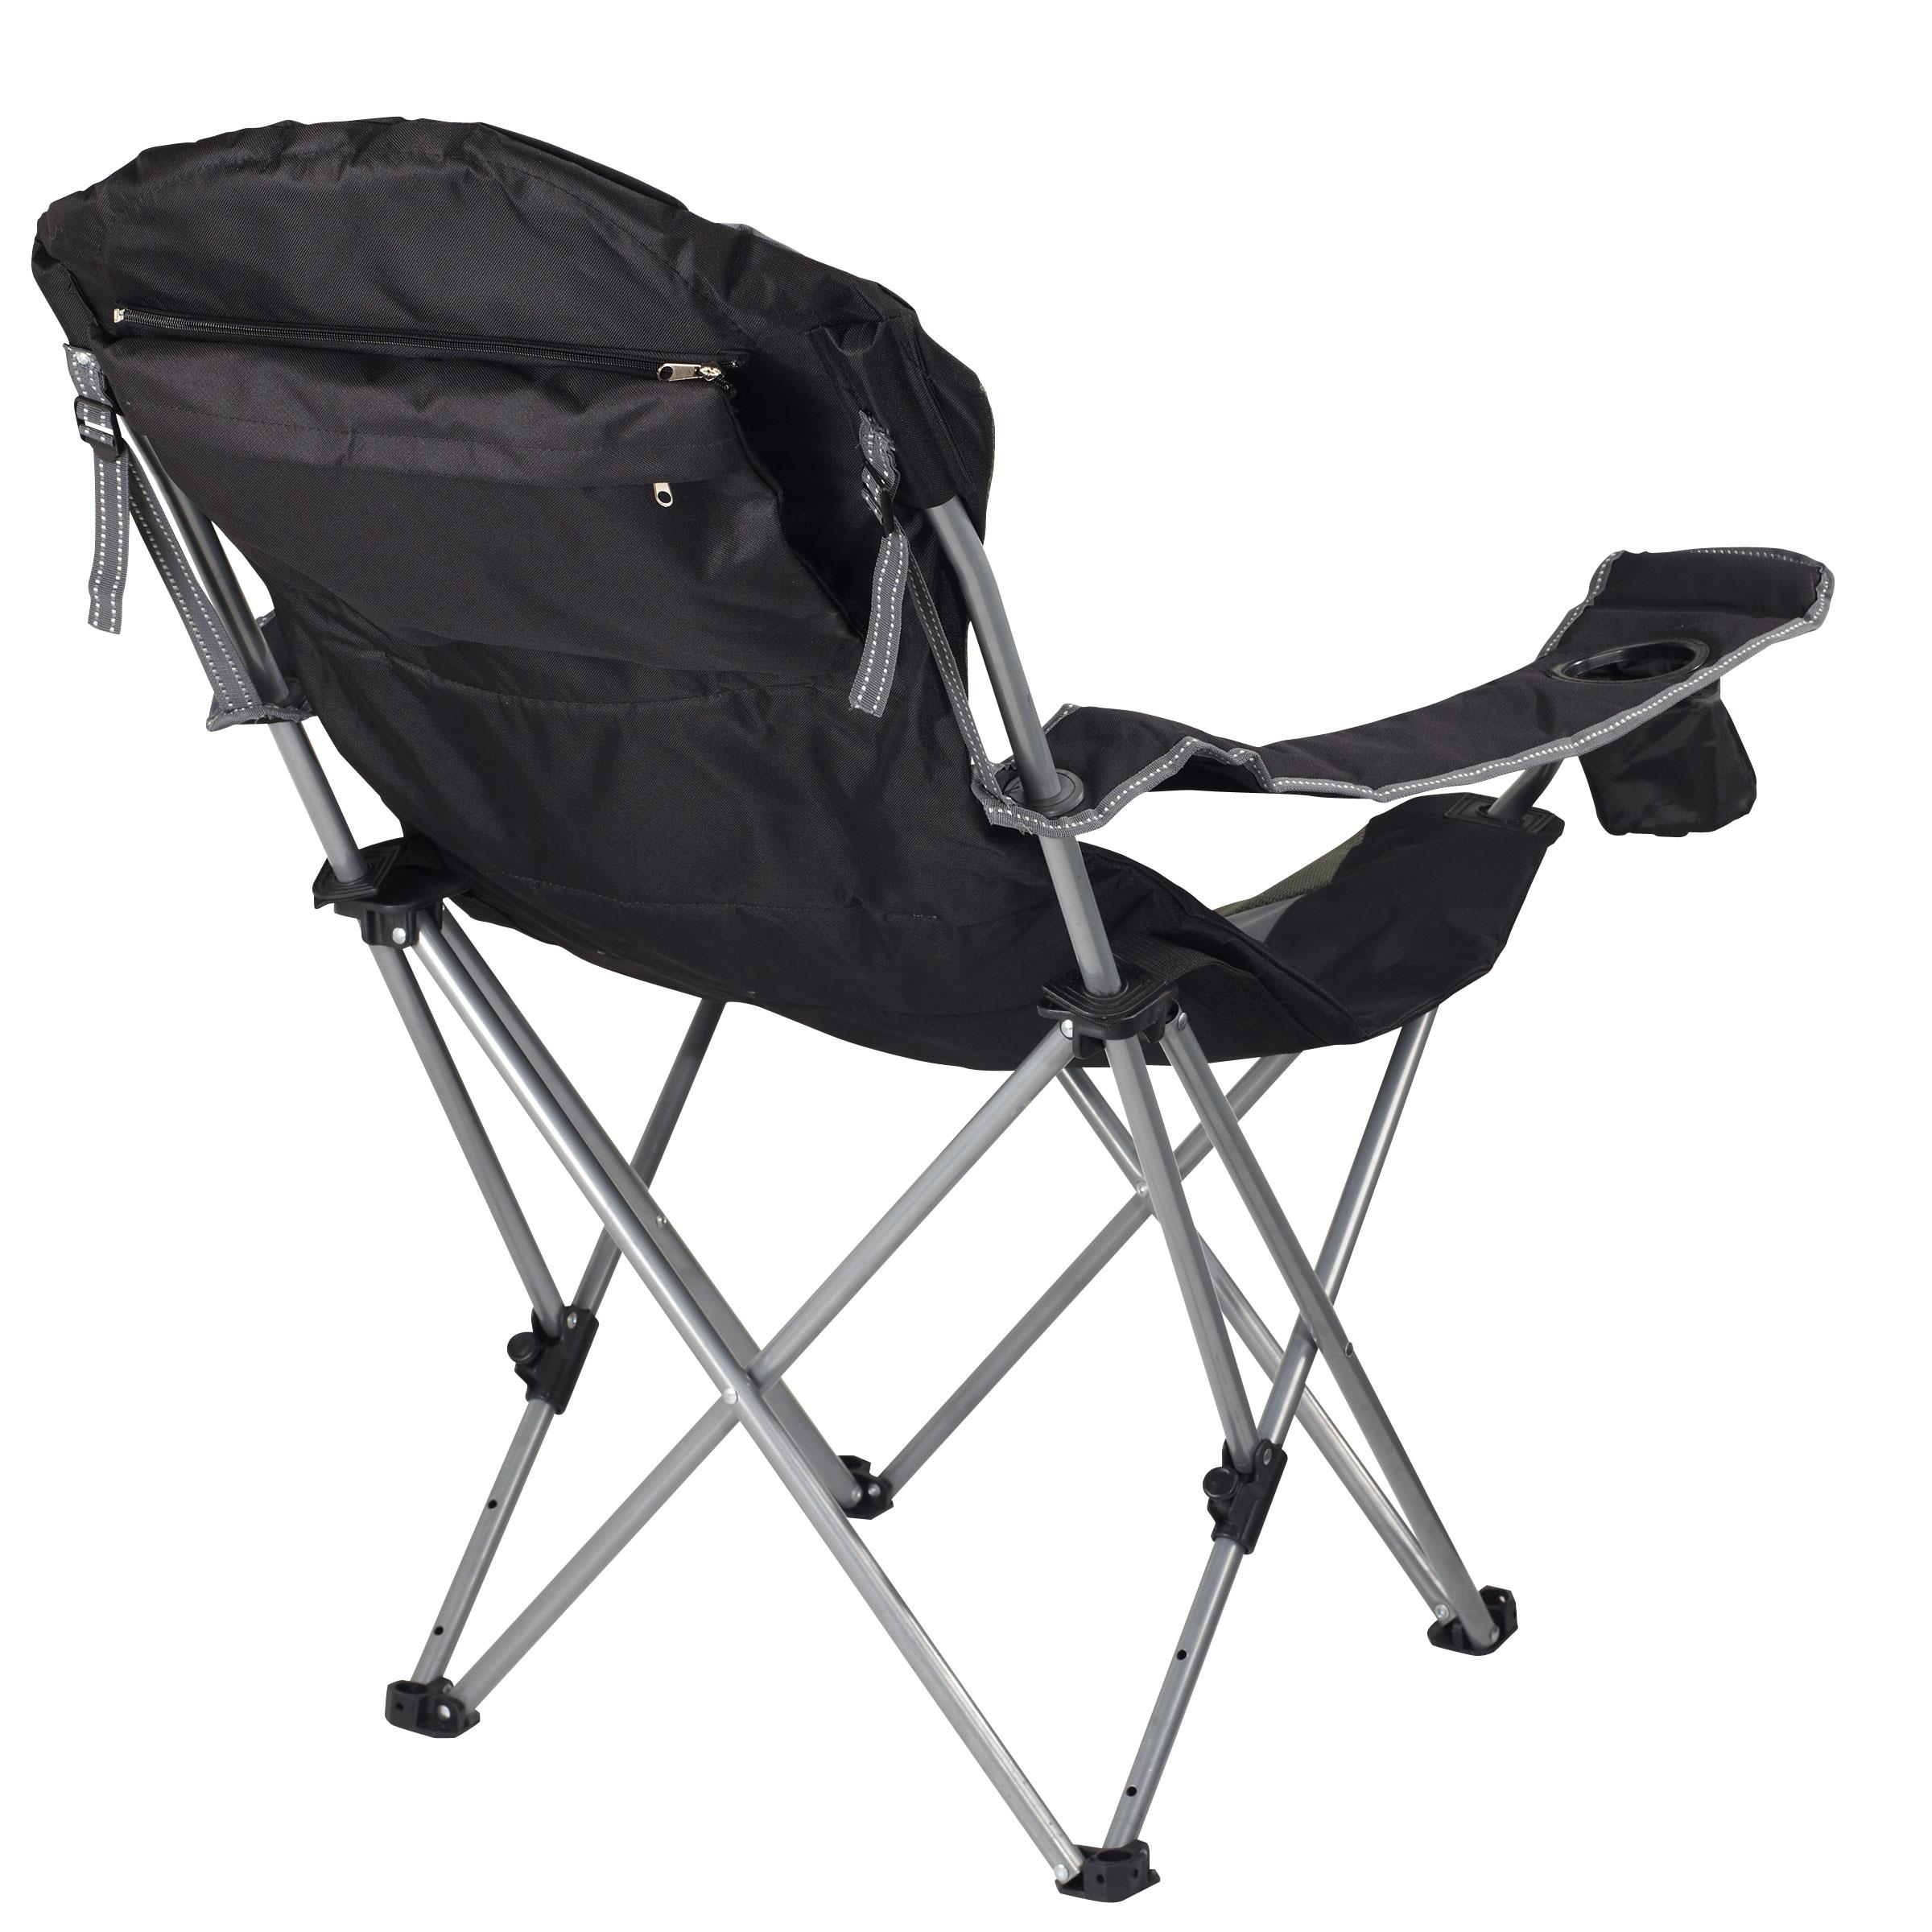 Reclining Camp Chair 200208986 Subaru Reclining Camp Chair Navy Relax You